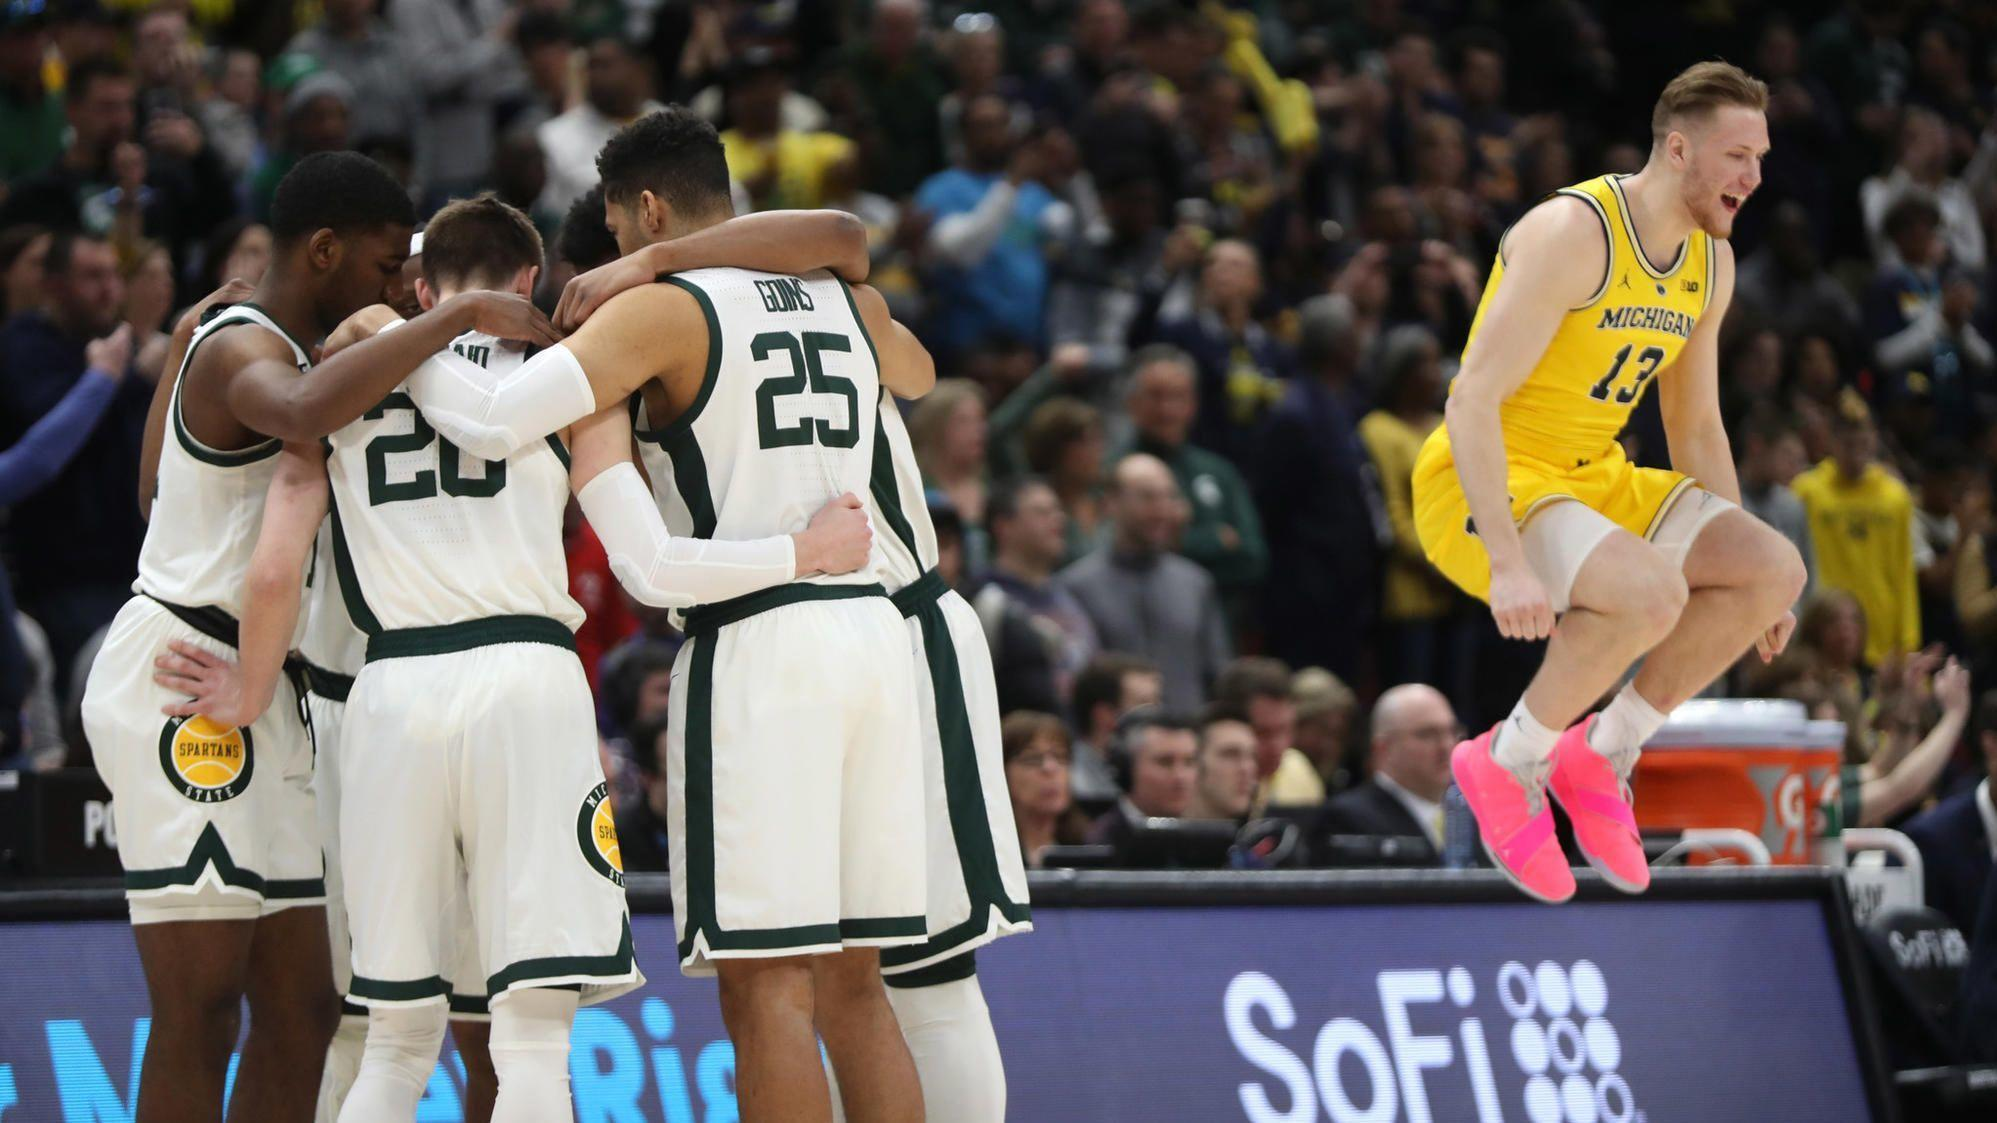 Selection Sunday storylines: Michigan State gets a brutal draw in Duke's region, while the committee finally gives midmajors a little respect